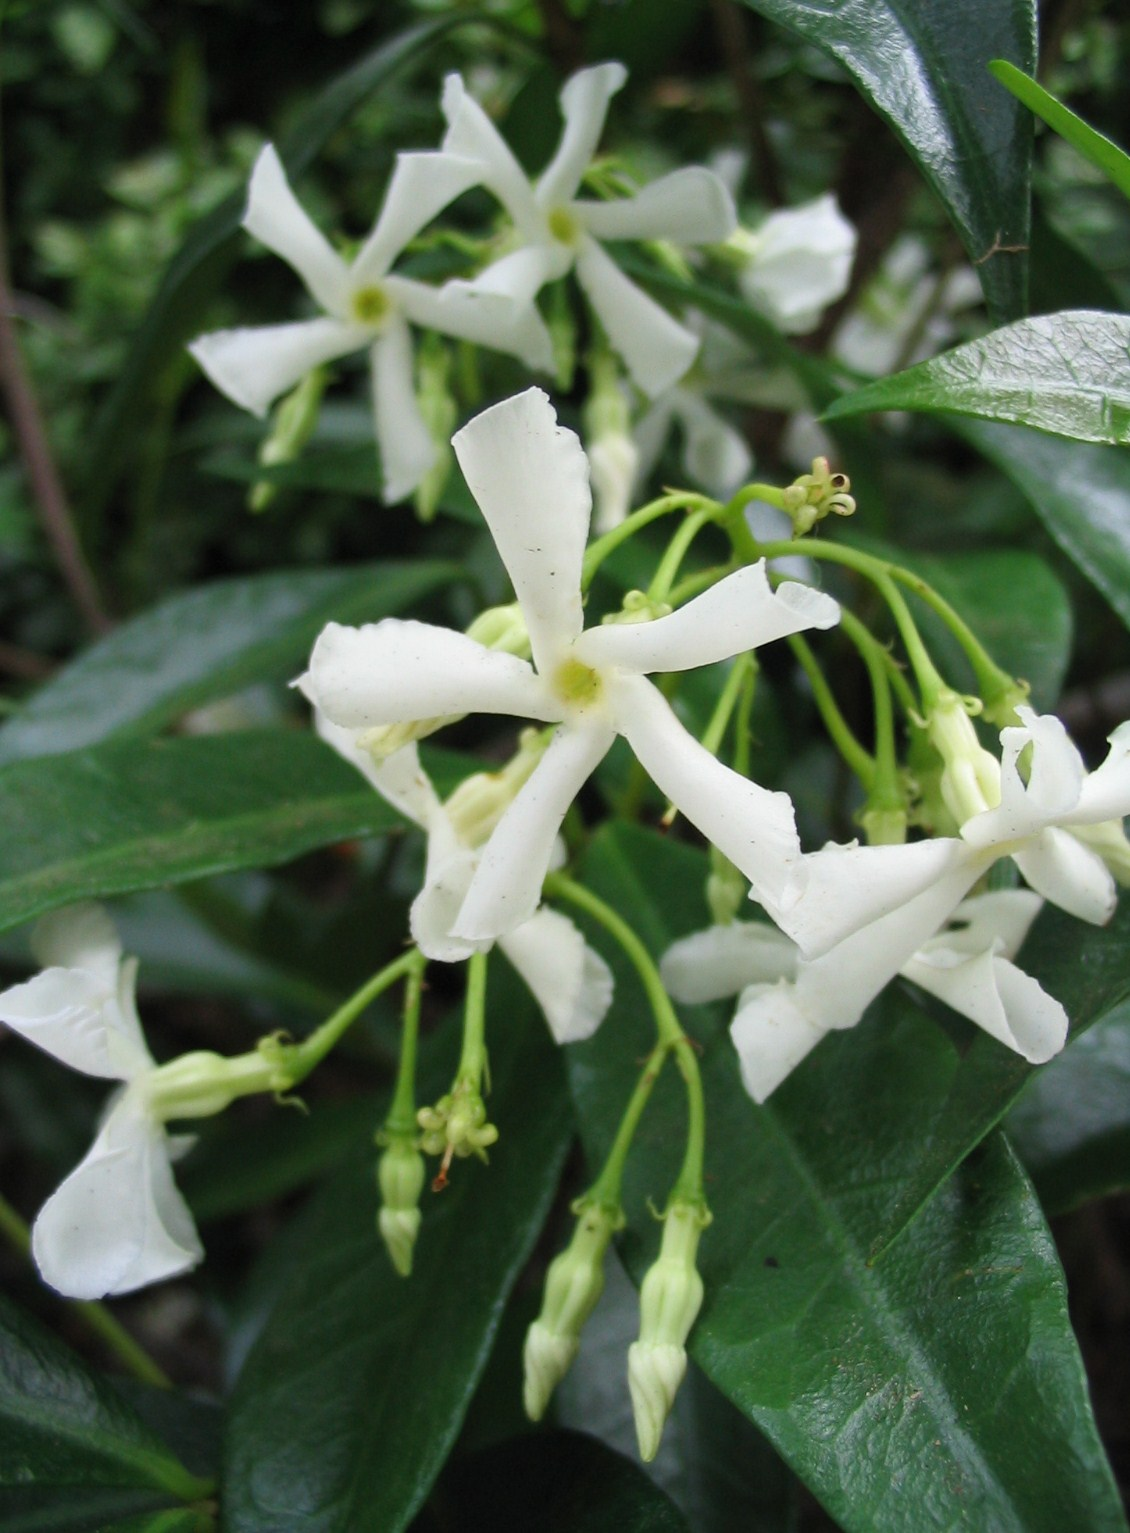 Fragrant Jasmine flowers in summer